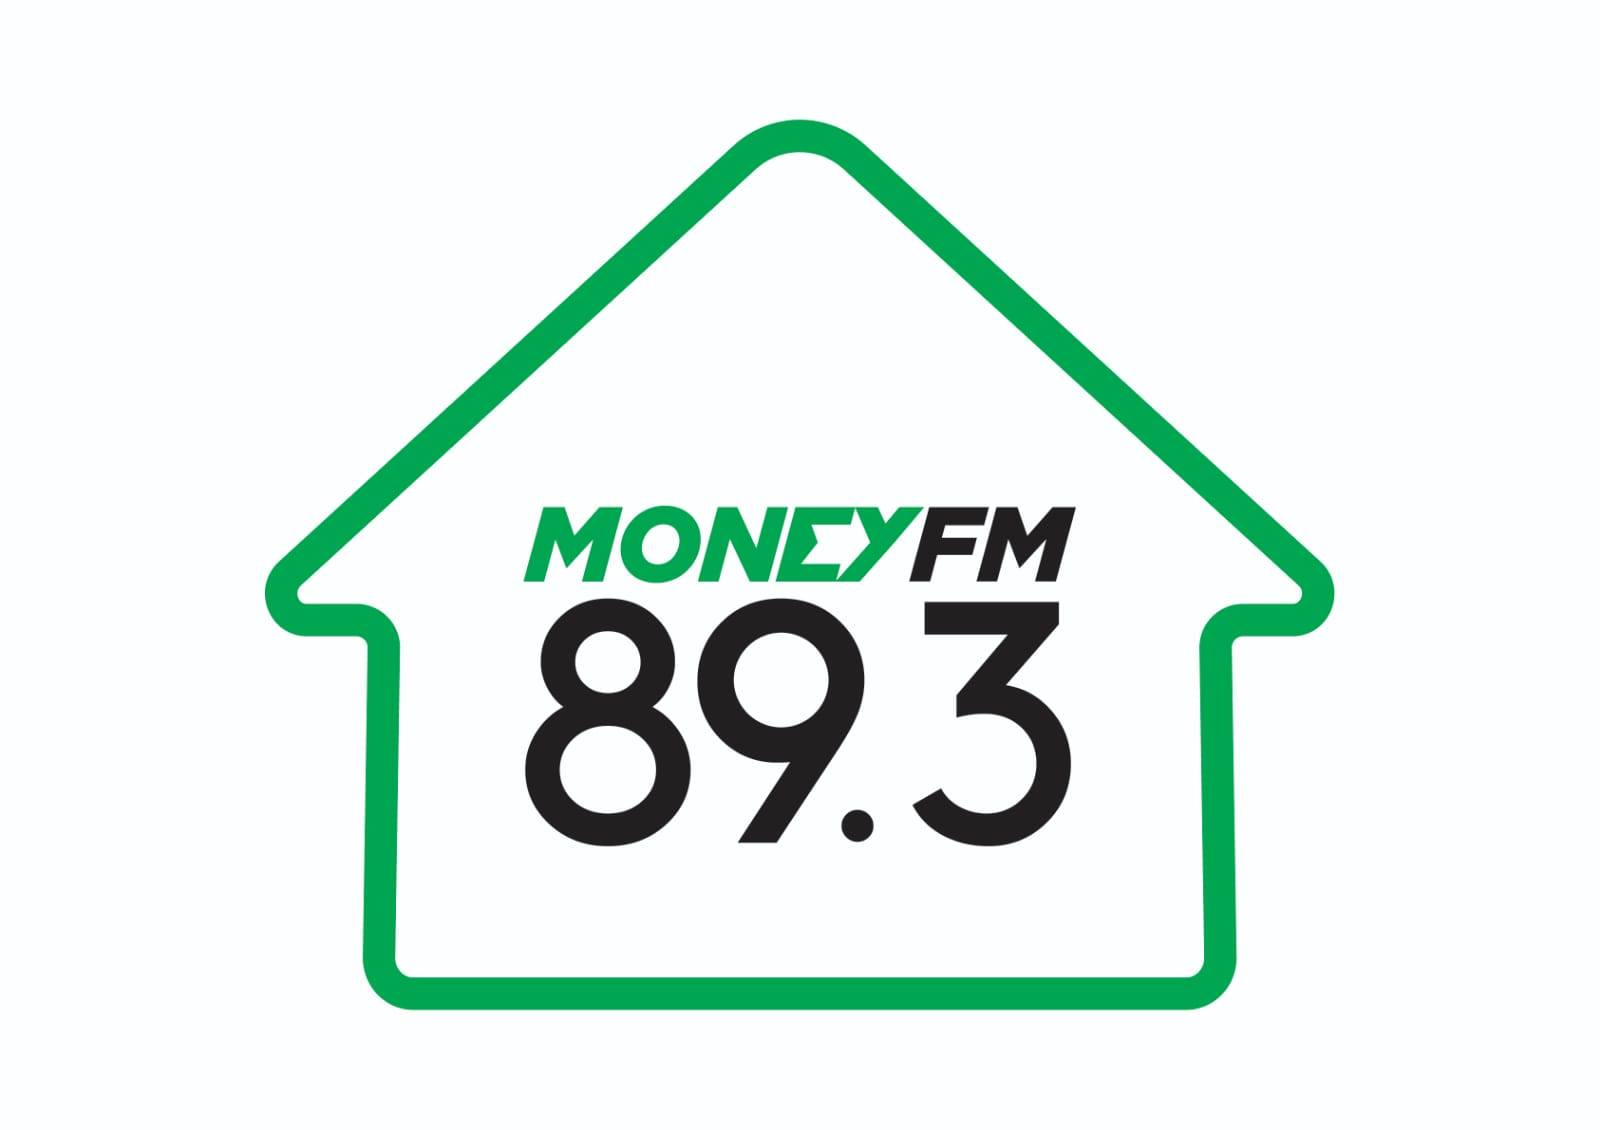 Money FM